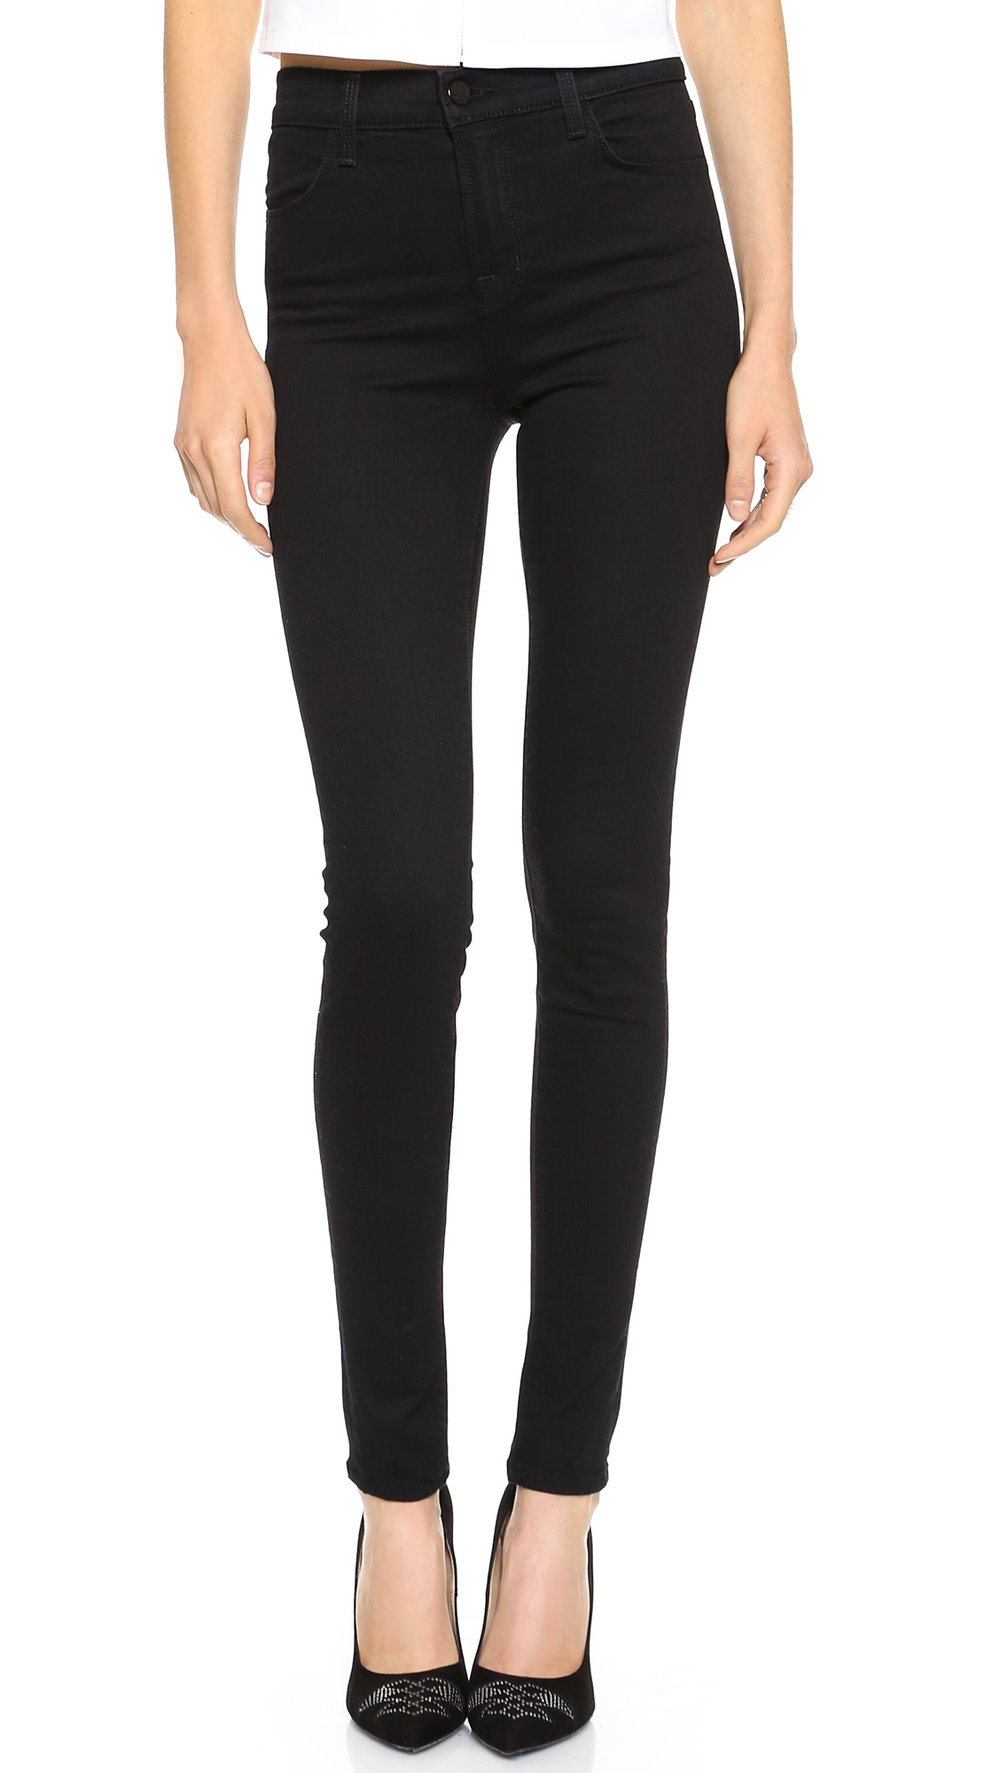 EVERY GIRL NEED A PAIR OF BLACK JEANS, THIS BRAND IS ONE OF MY FAVORITE ONES AND THIS STYLE SUITS SO WELL!